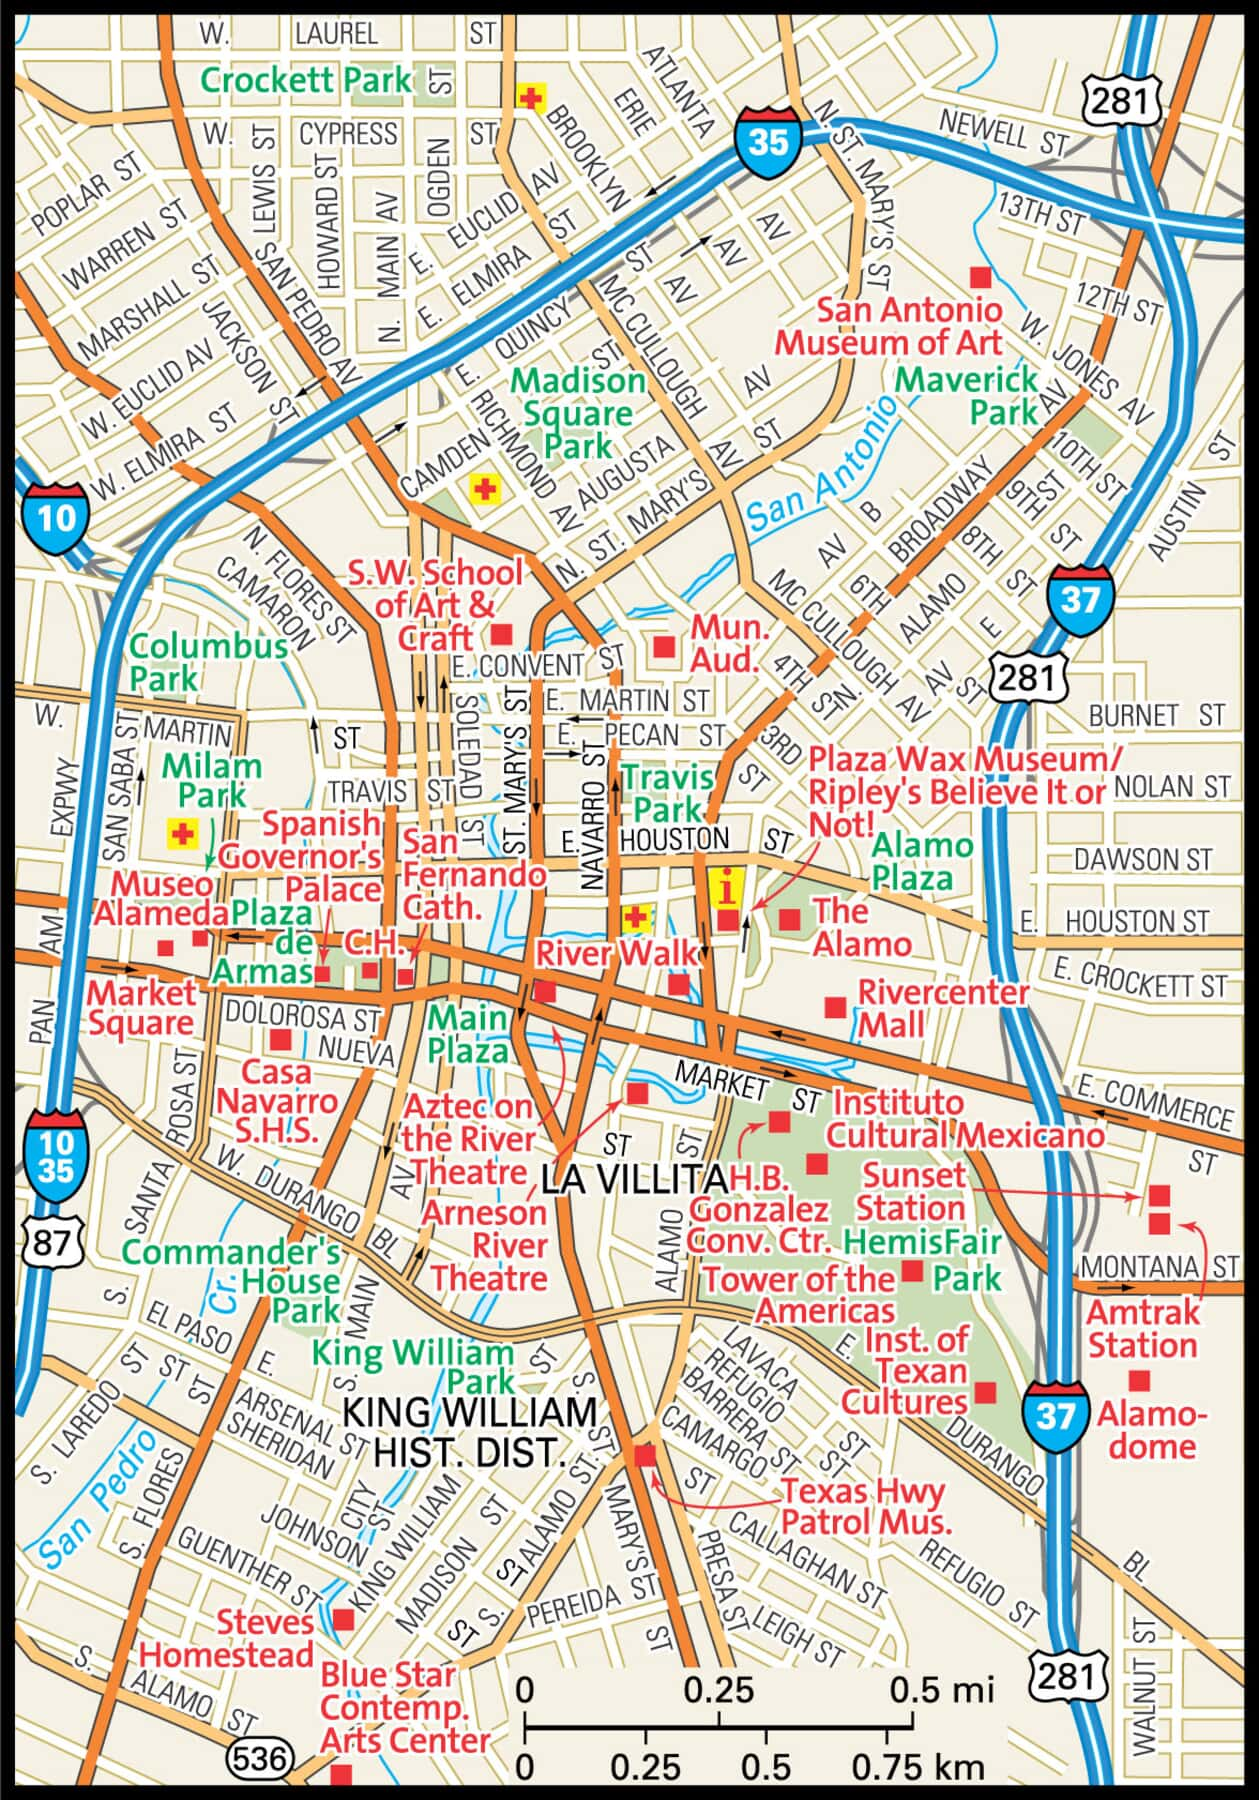 San Antonio Map - Guide to San Antonio, Texas on texas on map, webster on map, new orleans on map, corpus christi on map, commerce city on map, golden state on map, portland on us map, auburn hills on map, quad cities on map, plano on map, houston on map, la venta on map, south bend on map, white plains on map, bexar county on map, kansas city on map, leon county on map, palo pinto county on map, abilene on map, st john's on map,